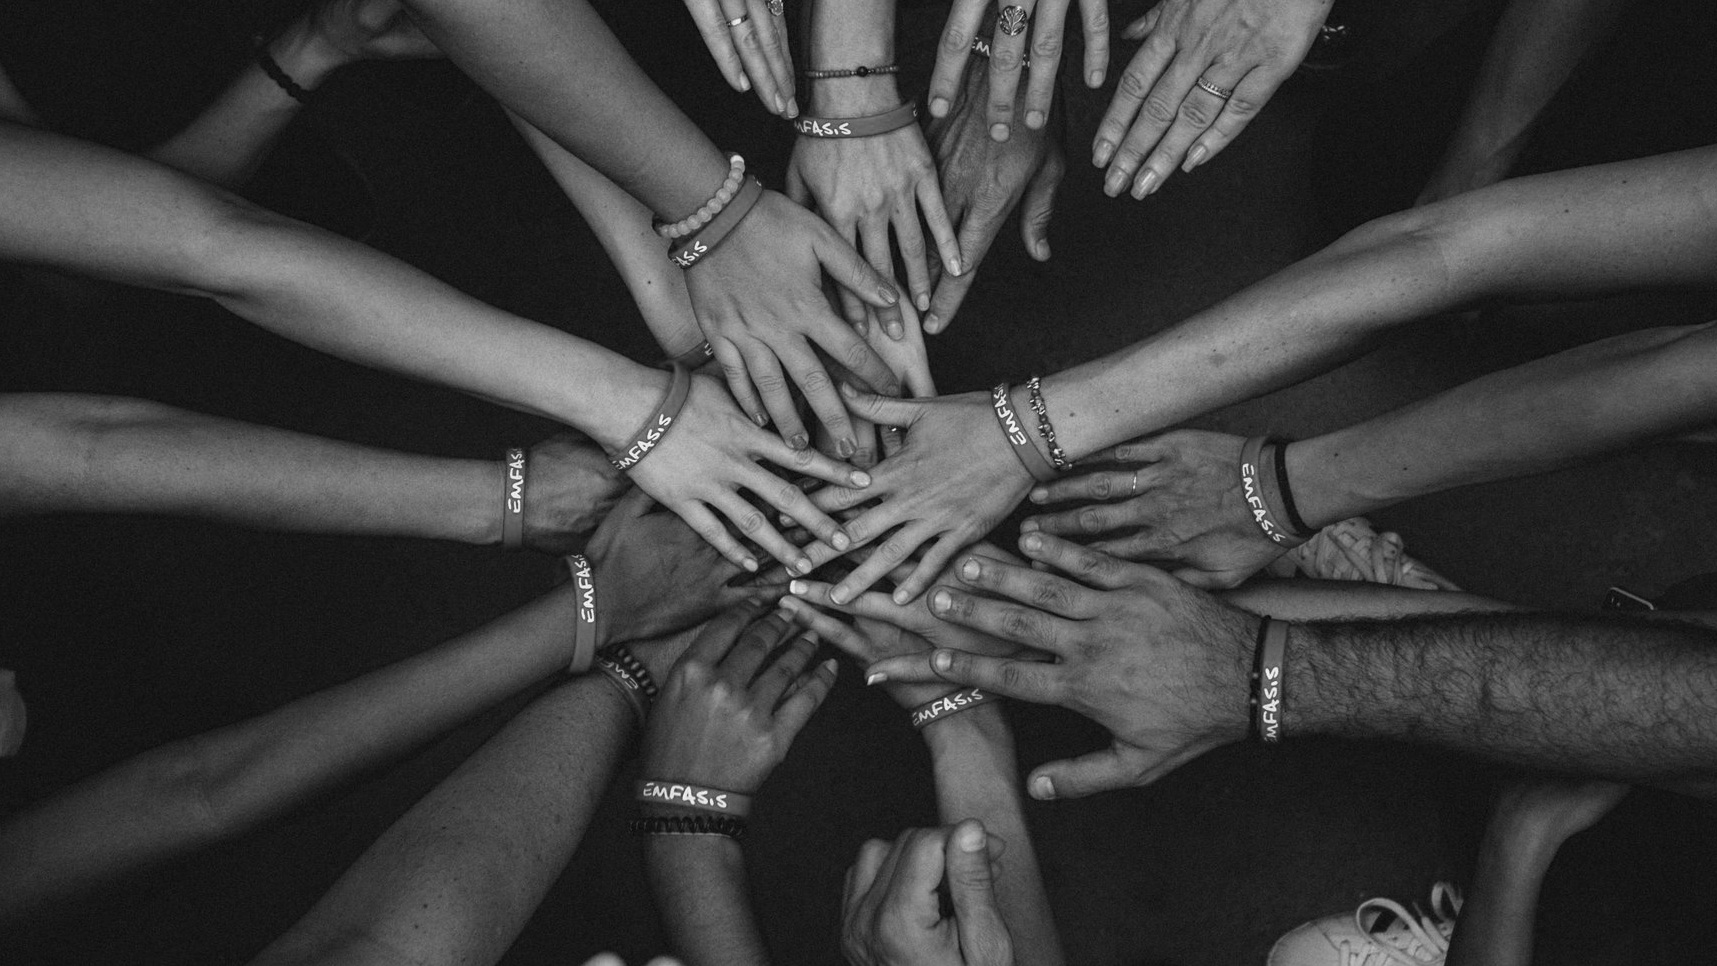 Group Therapy Hands Connection photo